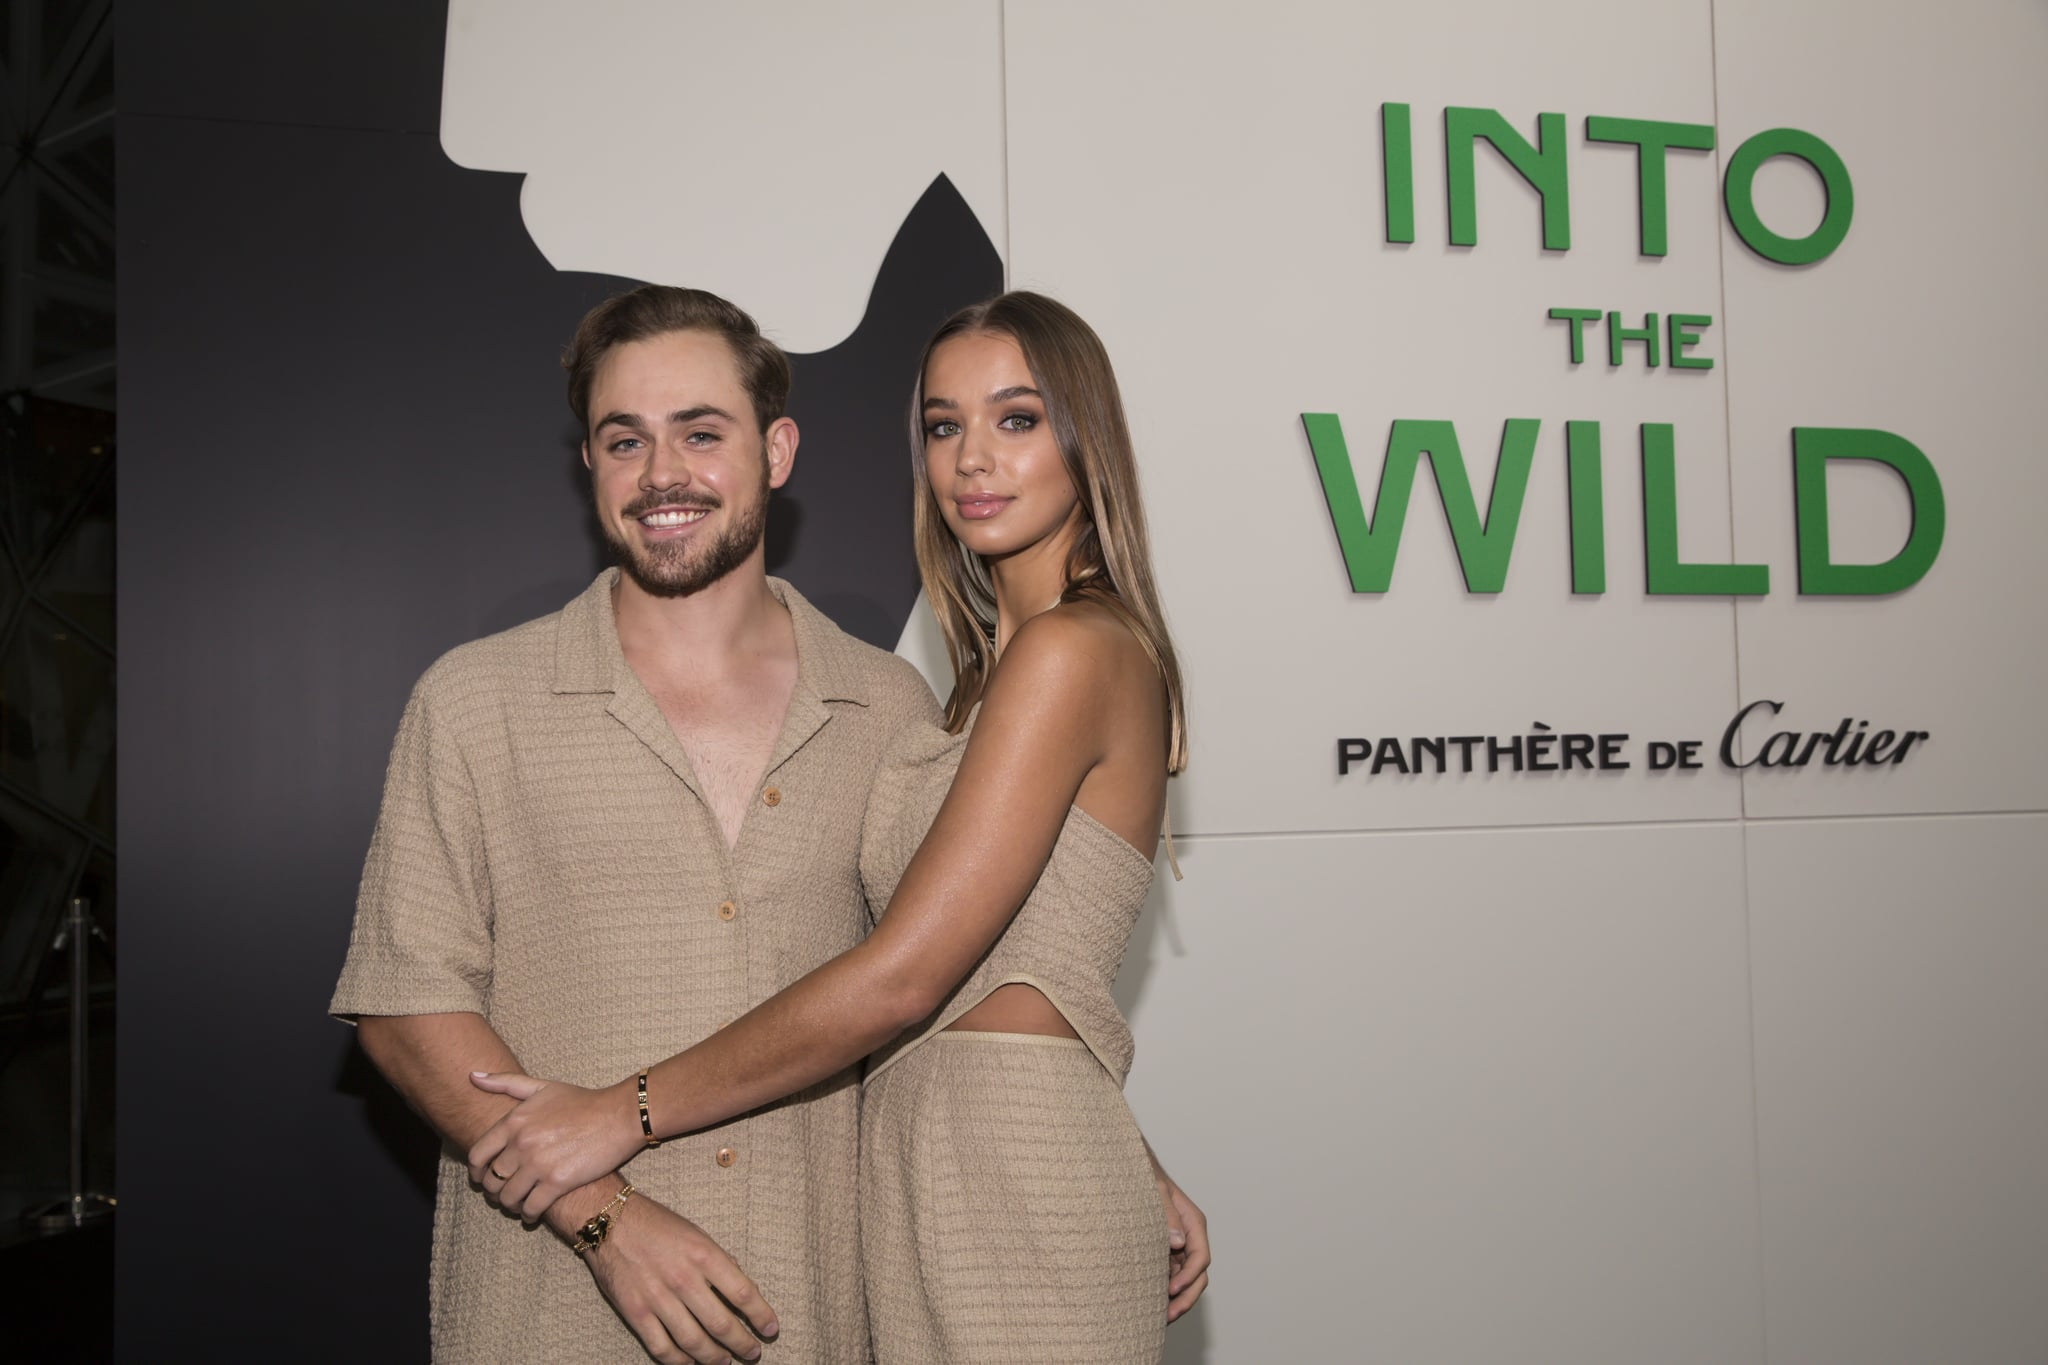 MELBOURNE, AUSTRALIA - MARCH 05: Dacre Montgomery and Olivia Pollock attends the Cartier Into The Wild Launch Event on March 05, 2020 in Melbourne, Australia. (Photo by Sam Tabone/WireImage)